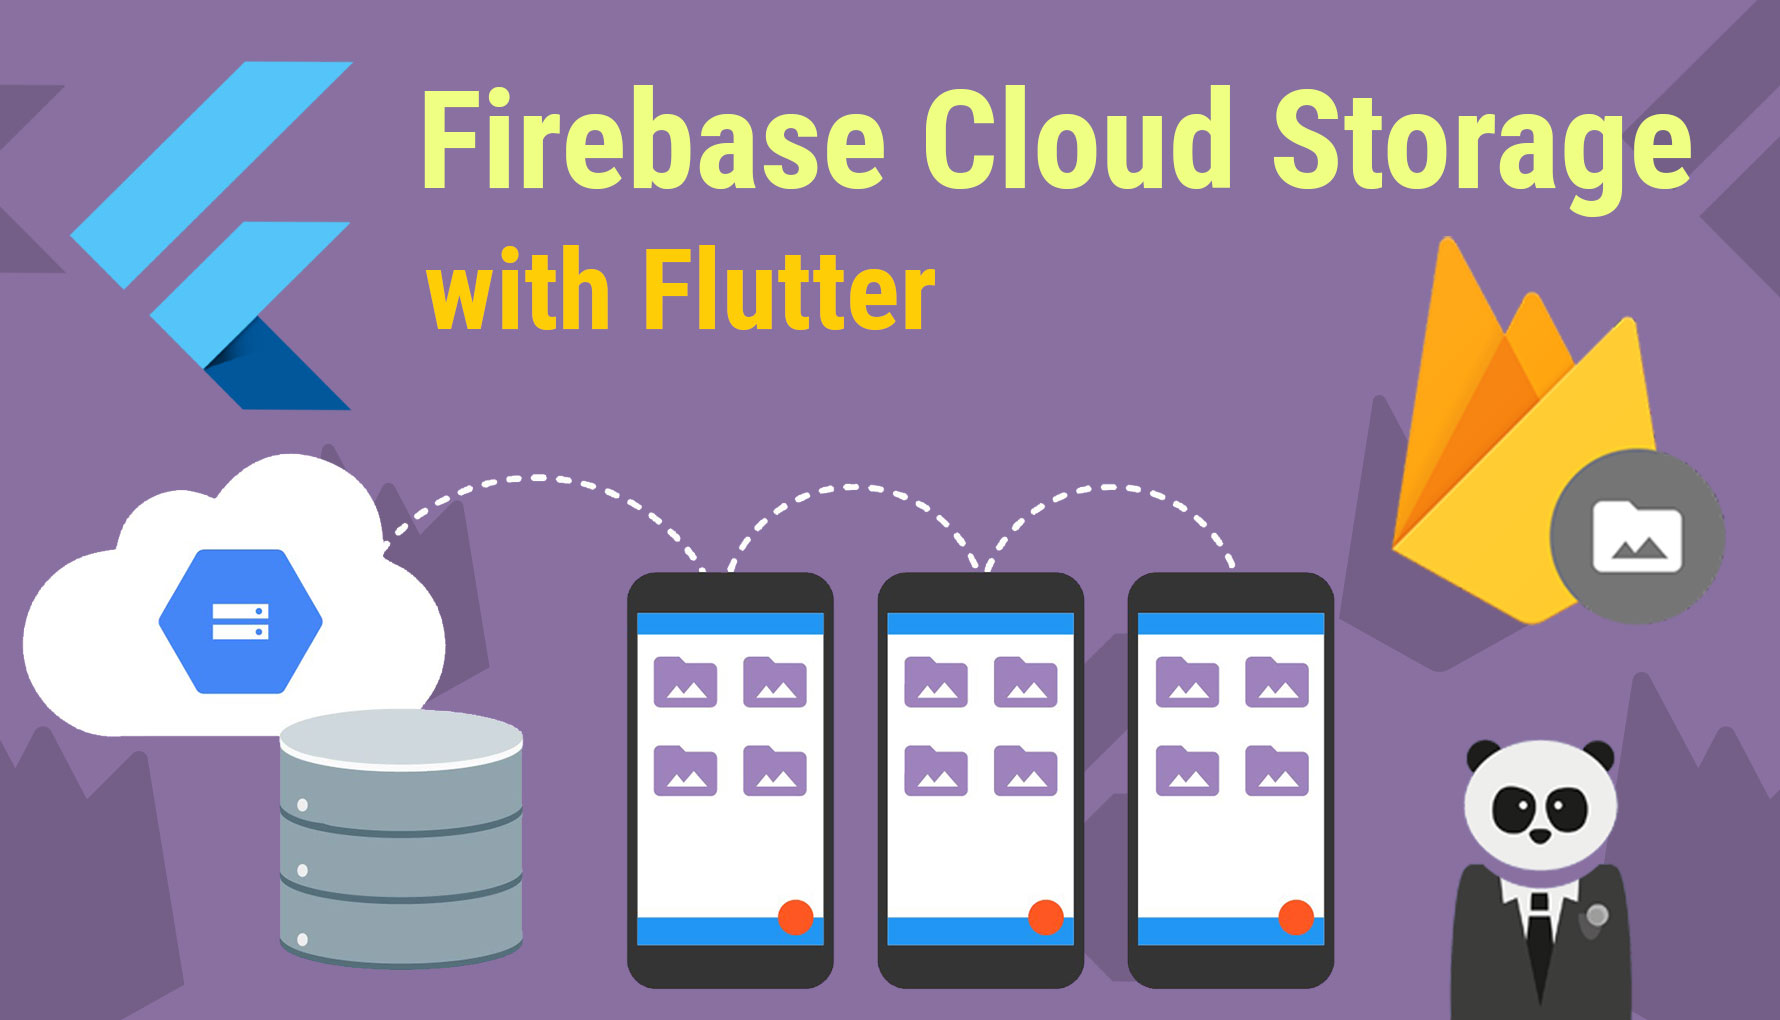 Using Firebase Cloud Storage with Flutter